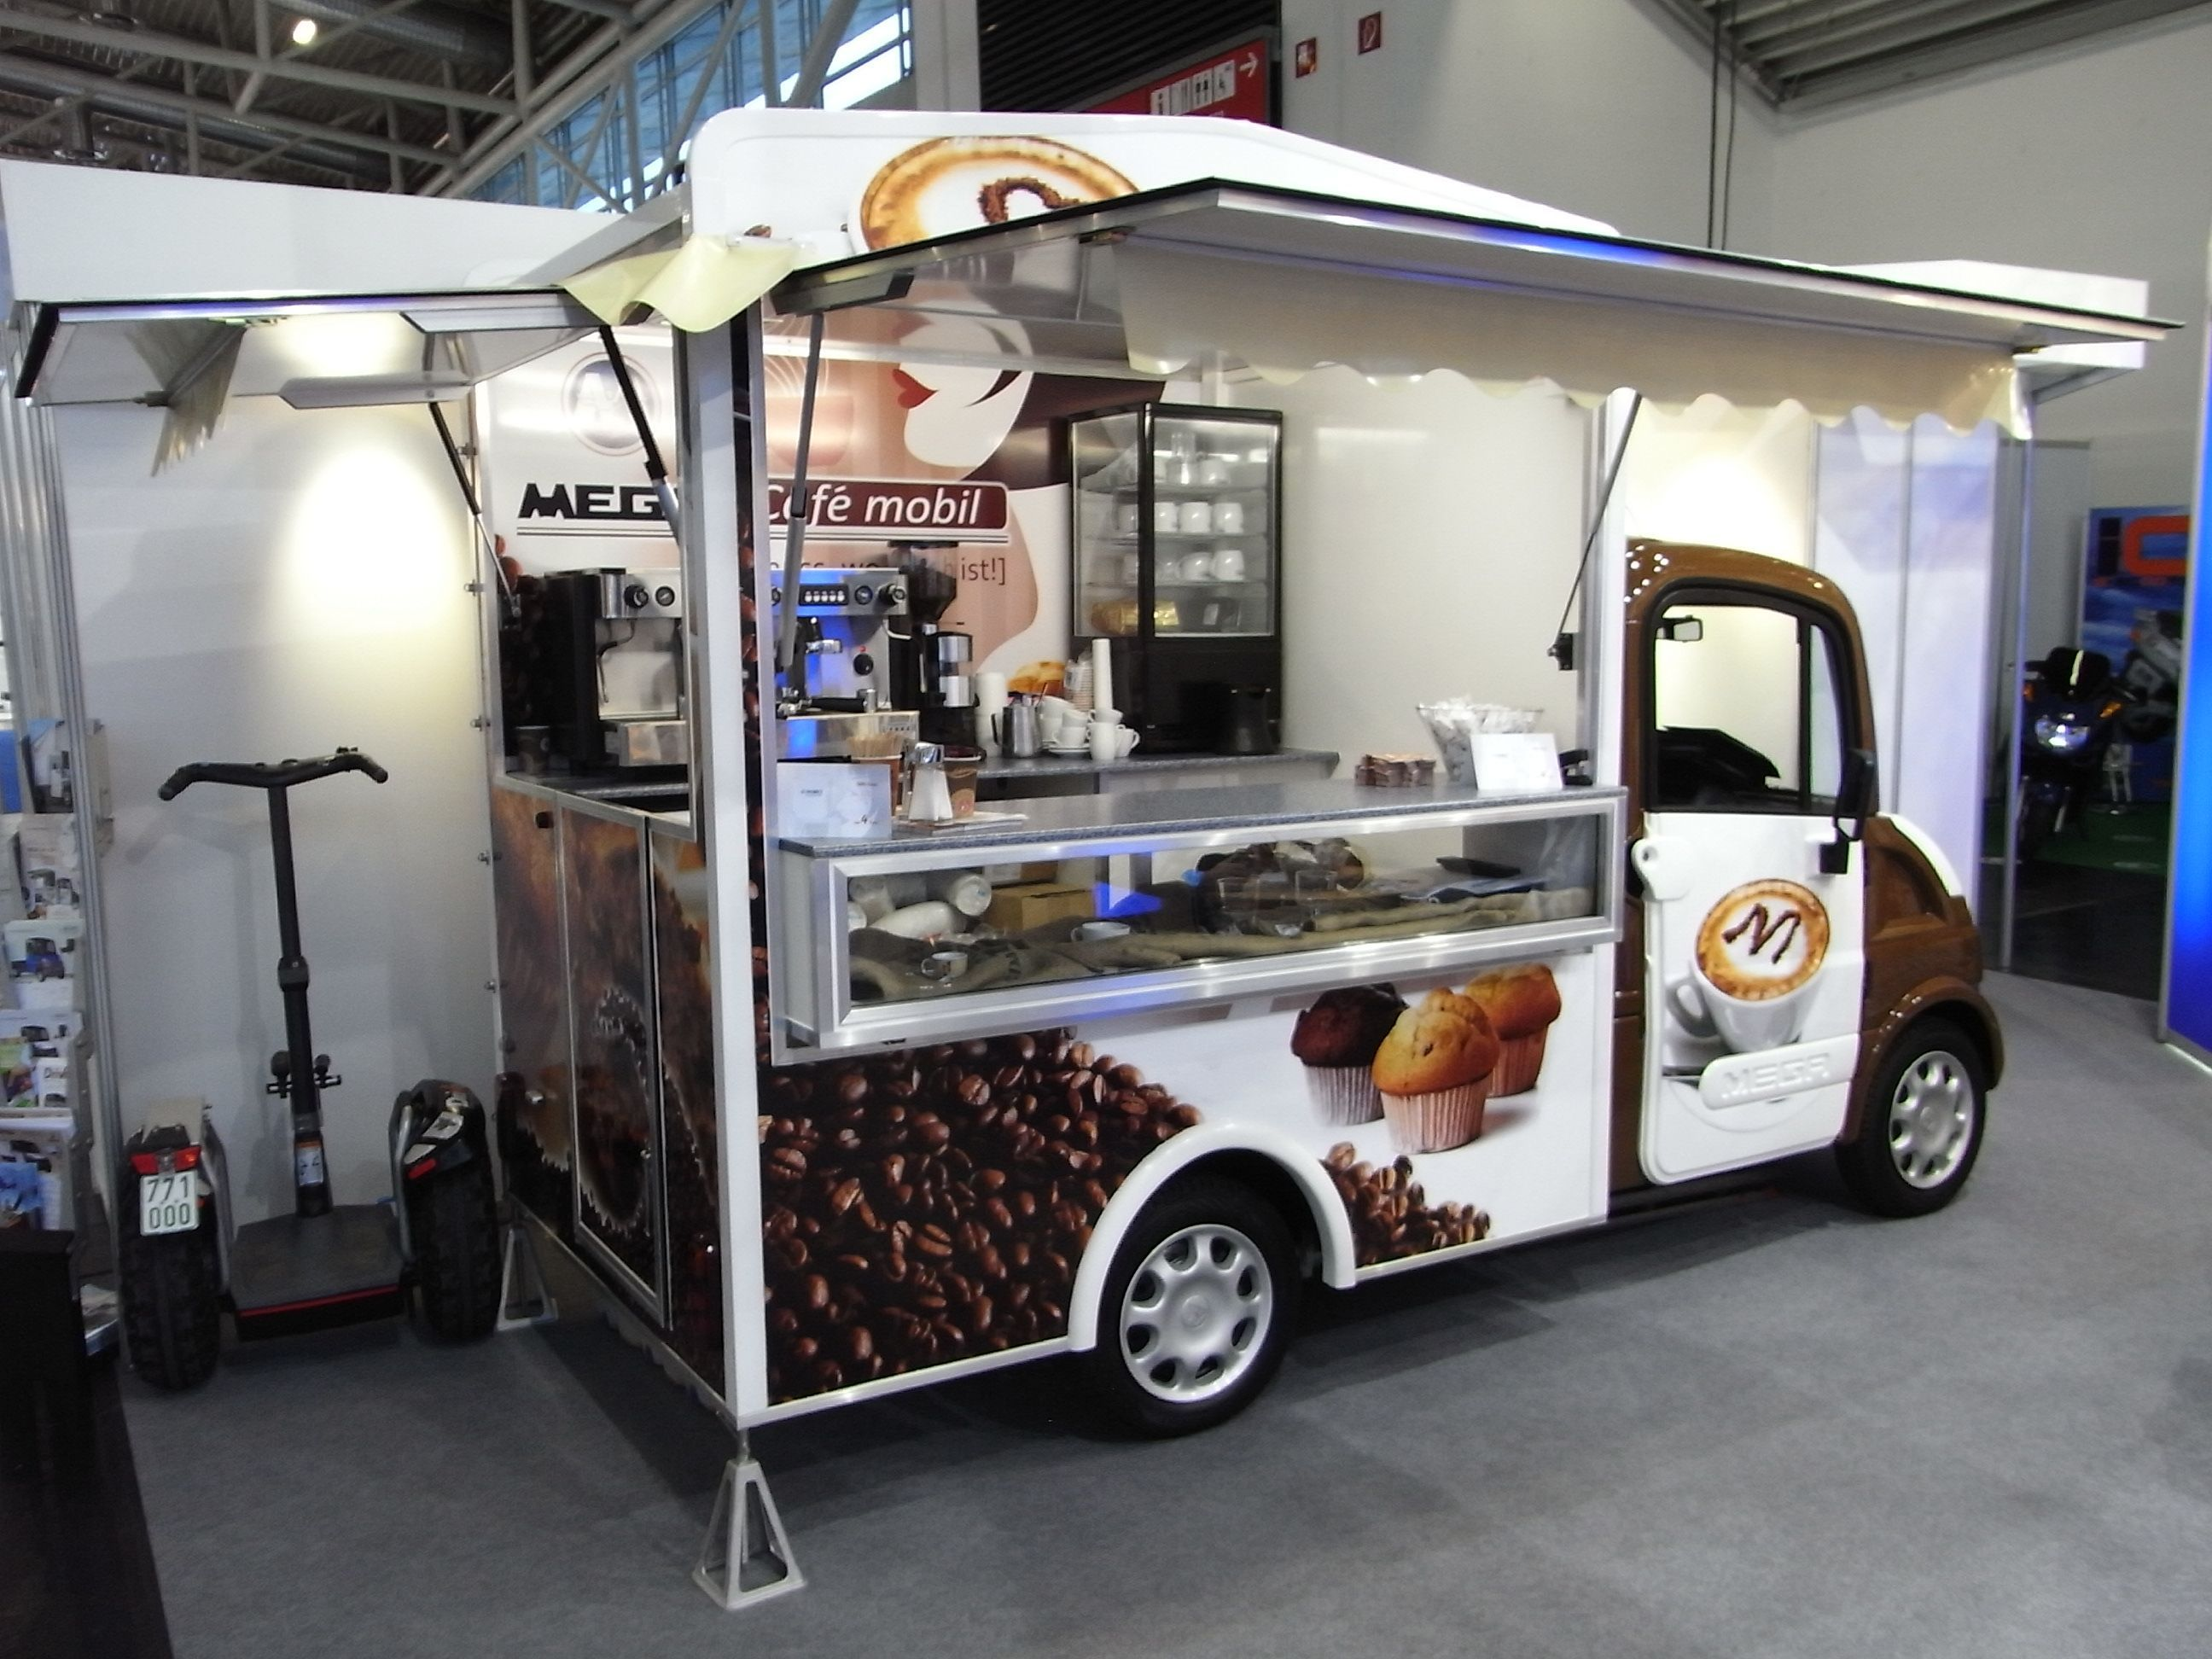 25 of the best food truck designs design galleries paste - How To Build Food Box Trailer Plans Google Search